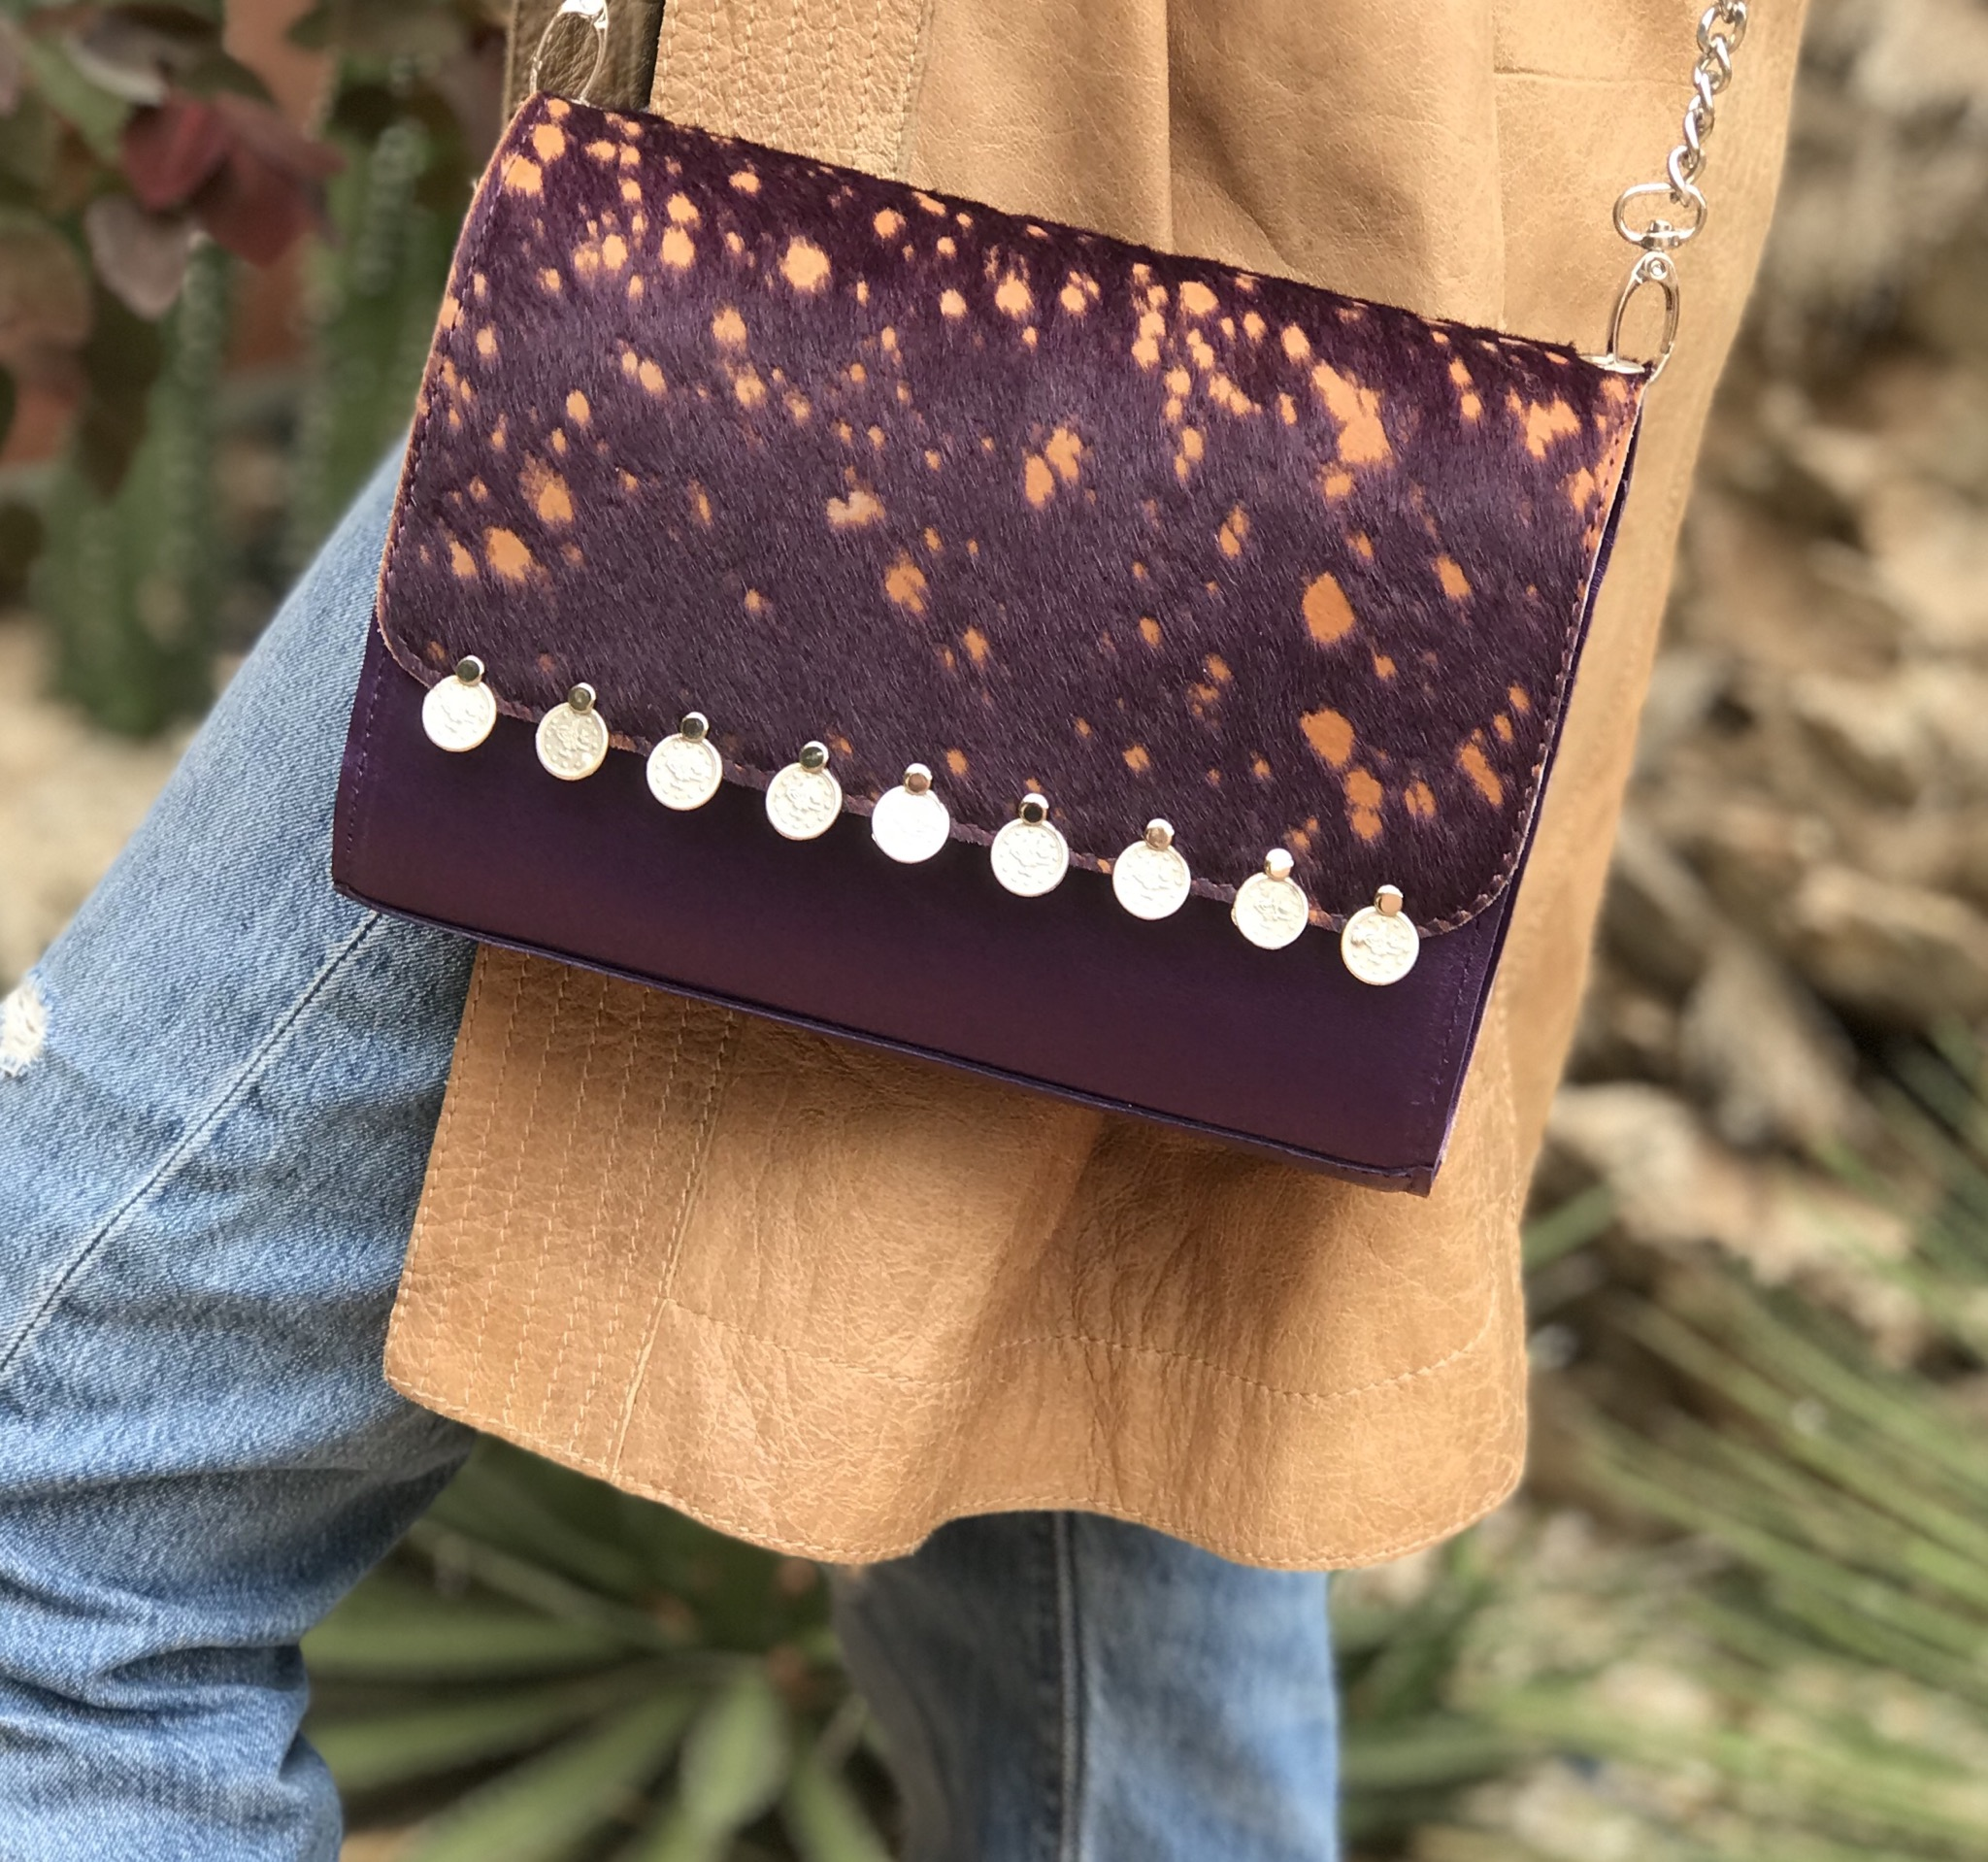 Bag jewelry hairy leather & leather purple & camel with coins